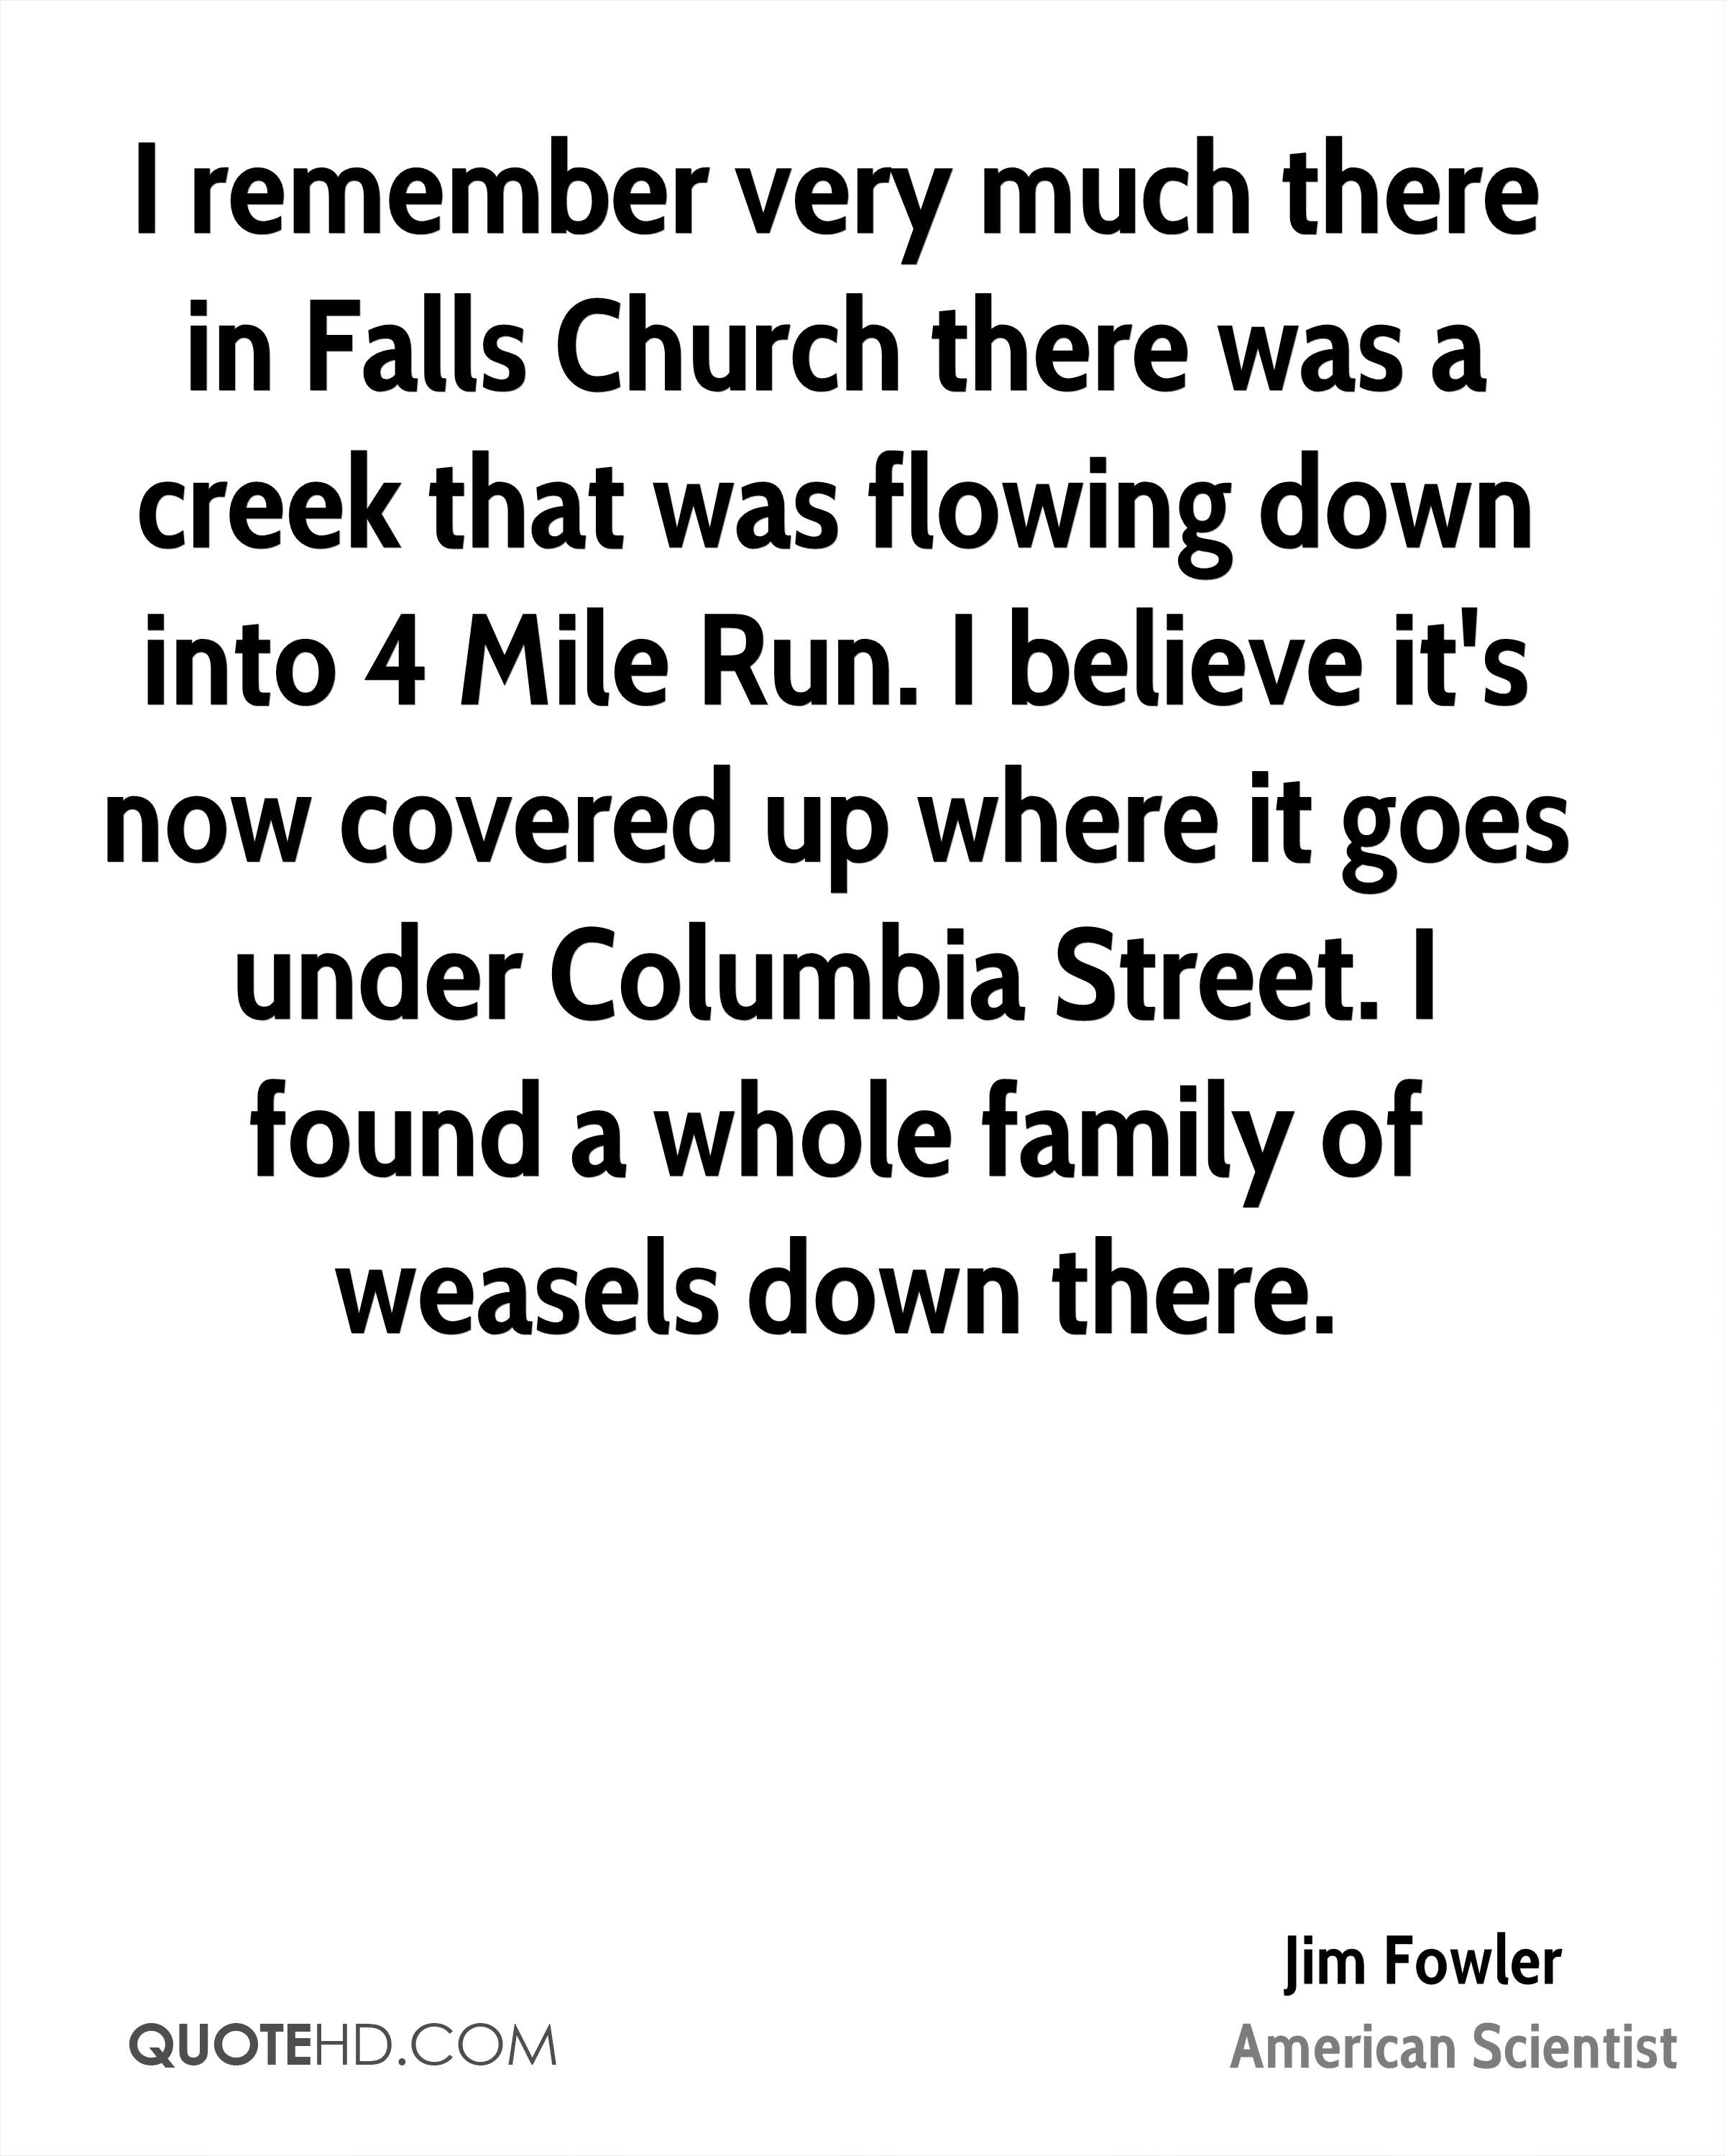 I remember very much there in Falls Church there was a creek that was flowing down into 4 Mile Run. I believe it's now covered up where it goes under Columbia Street. I found a whole family of weasels down there.